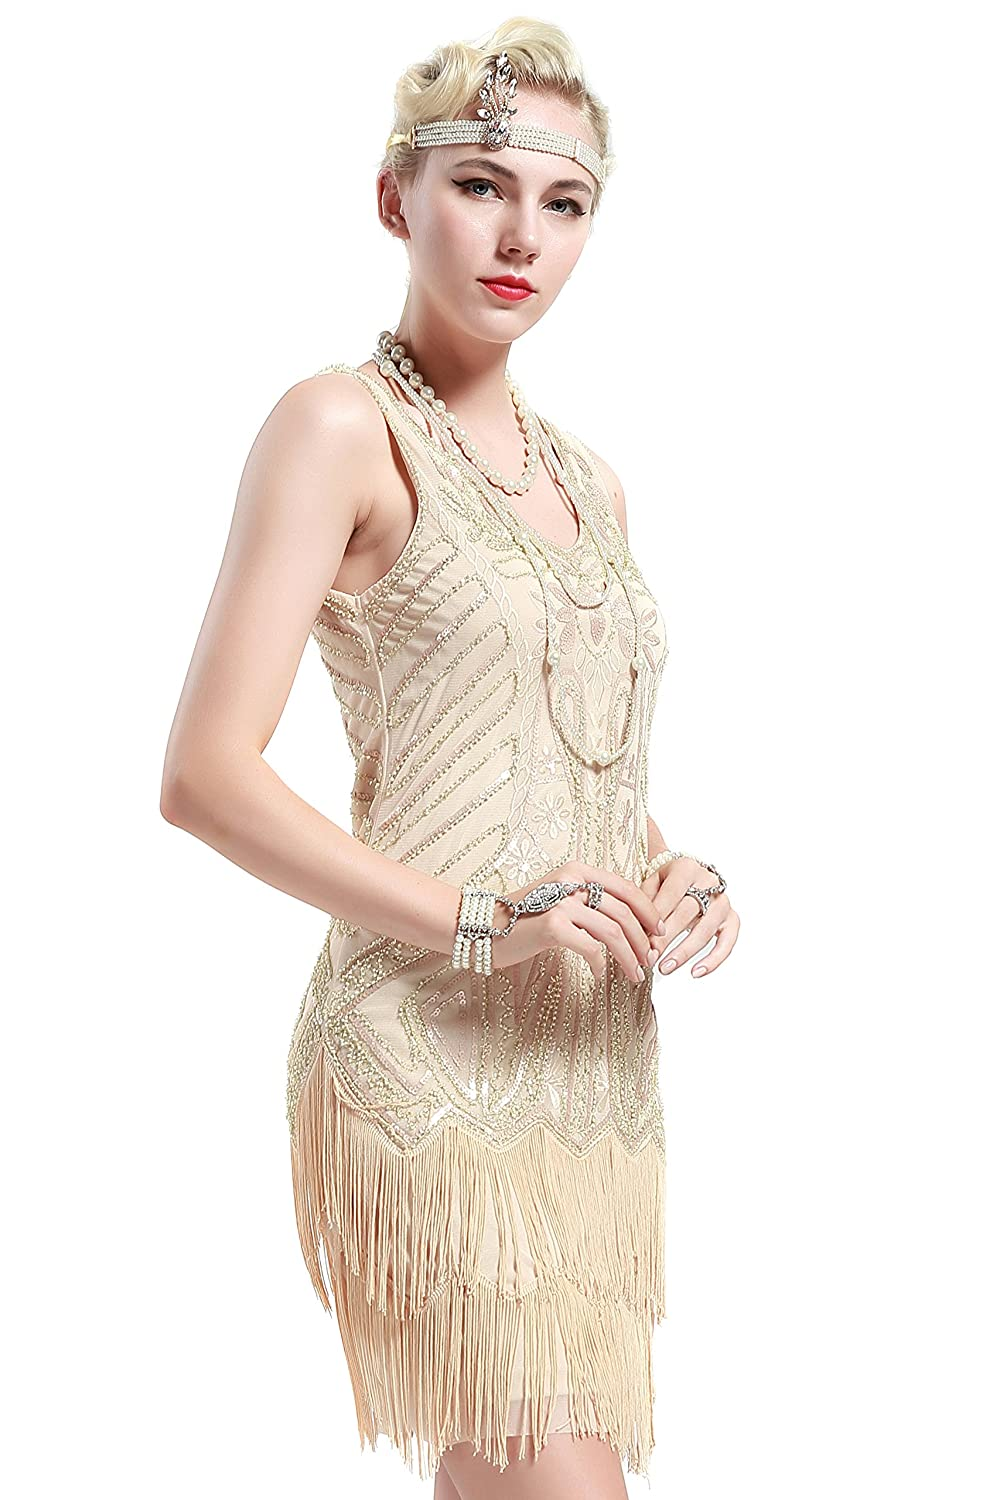 Flapper Costumes, Flapper Girl Costume Flapper Dresses 1920s V Neck Beaded Fringed Great Gatsby Dress $28.99 AT vintagedancer.com